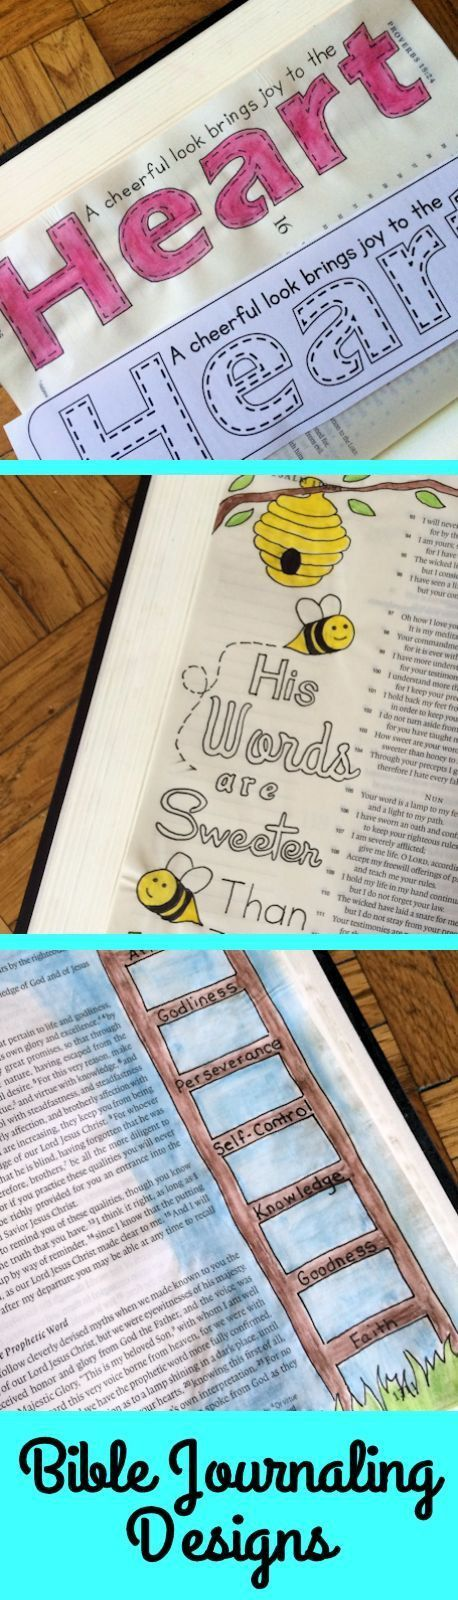 1000 Images About Bible Journaling Templates On Pinterest